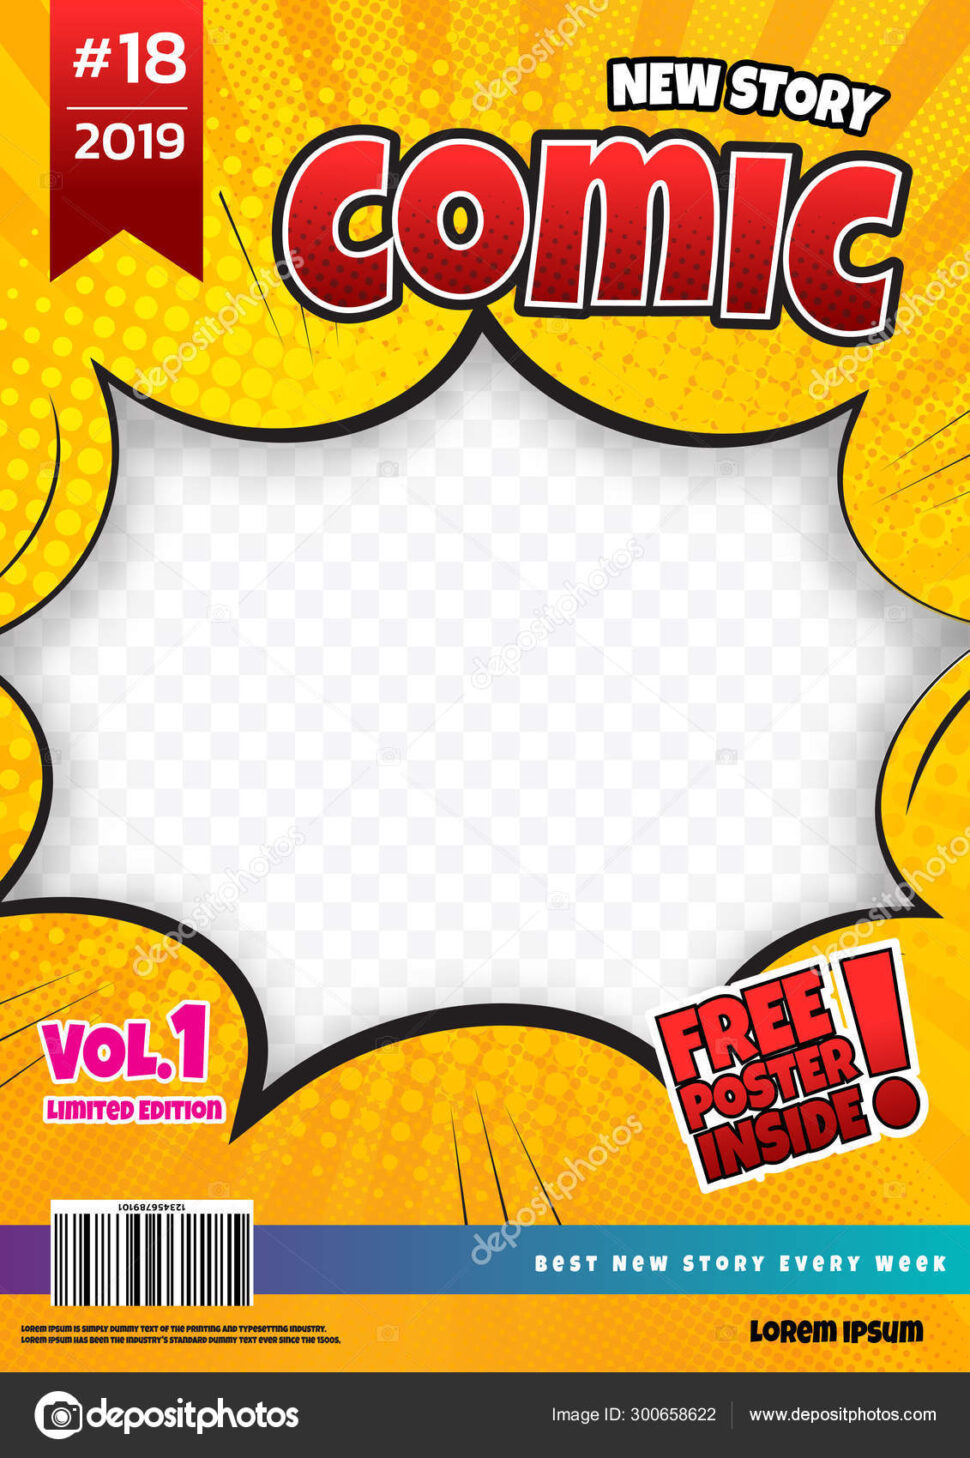 Large Size of Comic Book Template Design Magazine Cover Stock Vector Image By Piikcoro1 Depositphotos Spreadsheet